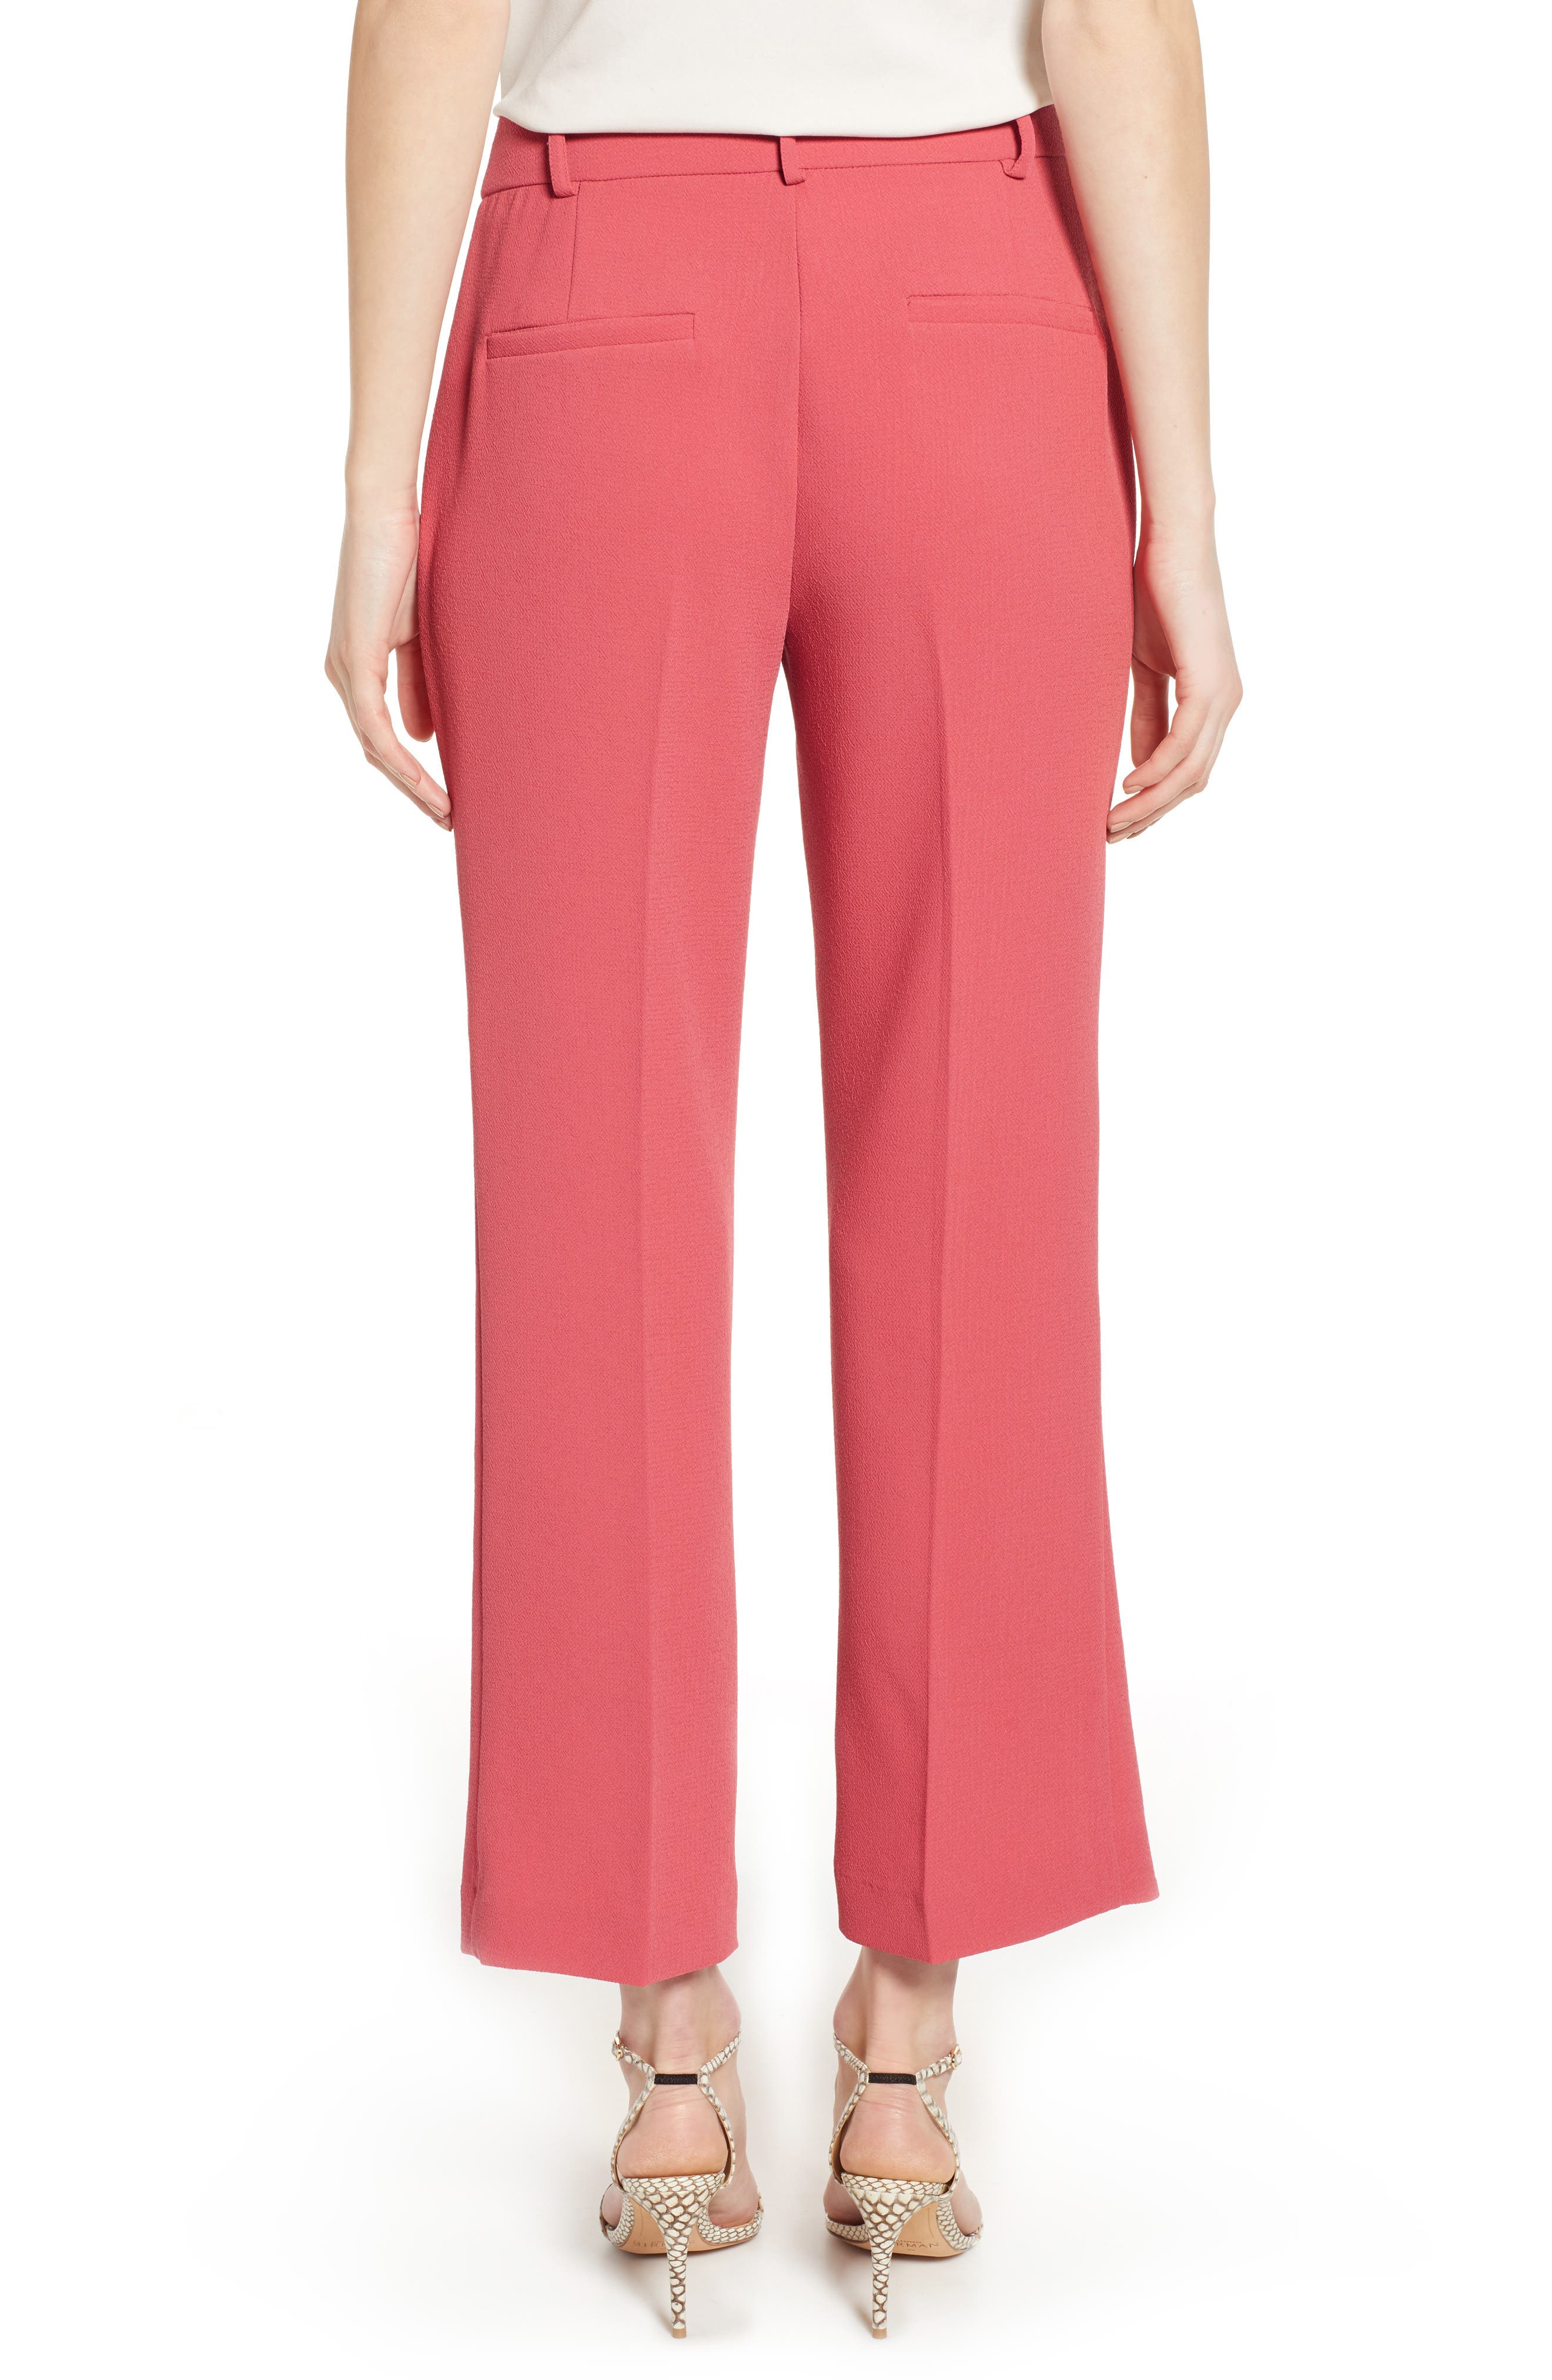 1.STATE, Crepe Kick Flare Ankle Pants, Alternate thumbnail 2, color, CORAL POPPY